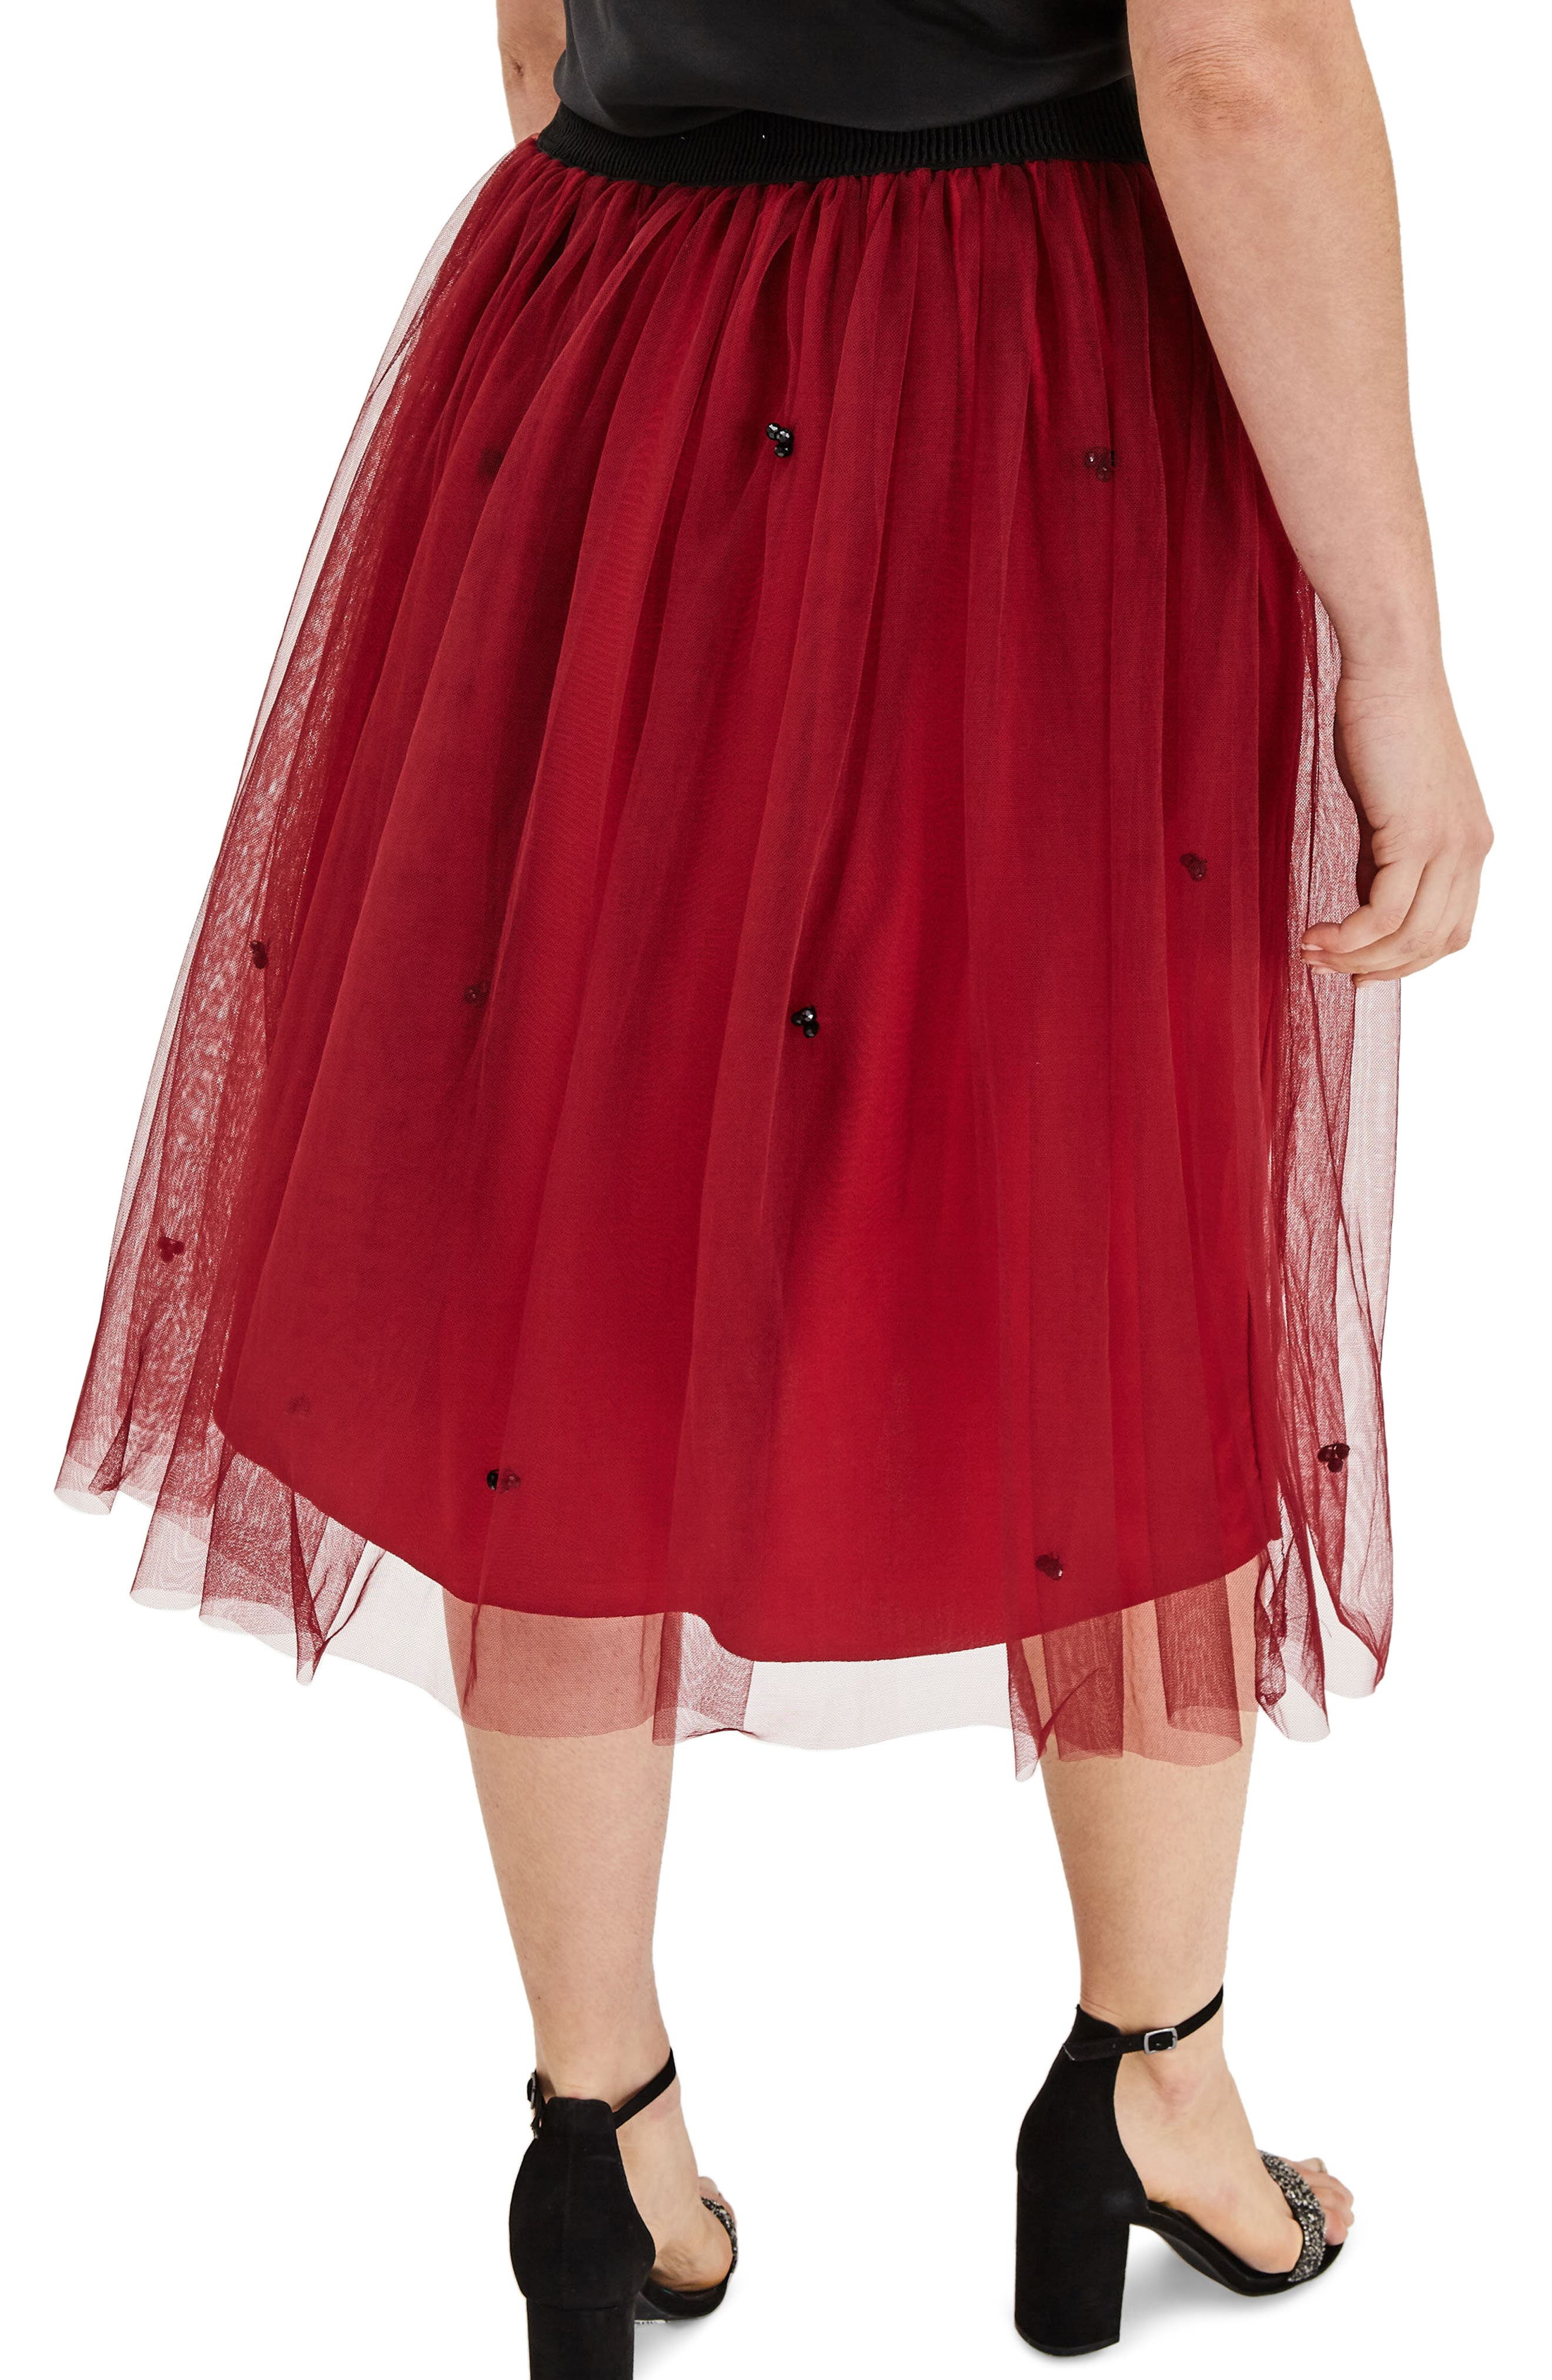 Red Tulle Beaded Skirt,                             Alternate thumbnail 2, color,                             600